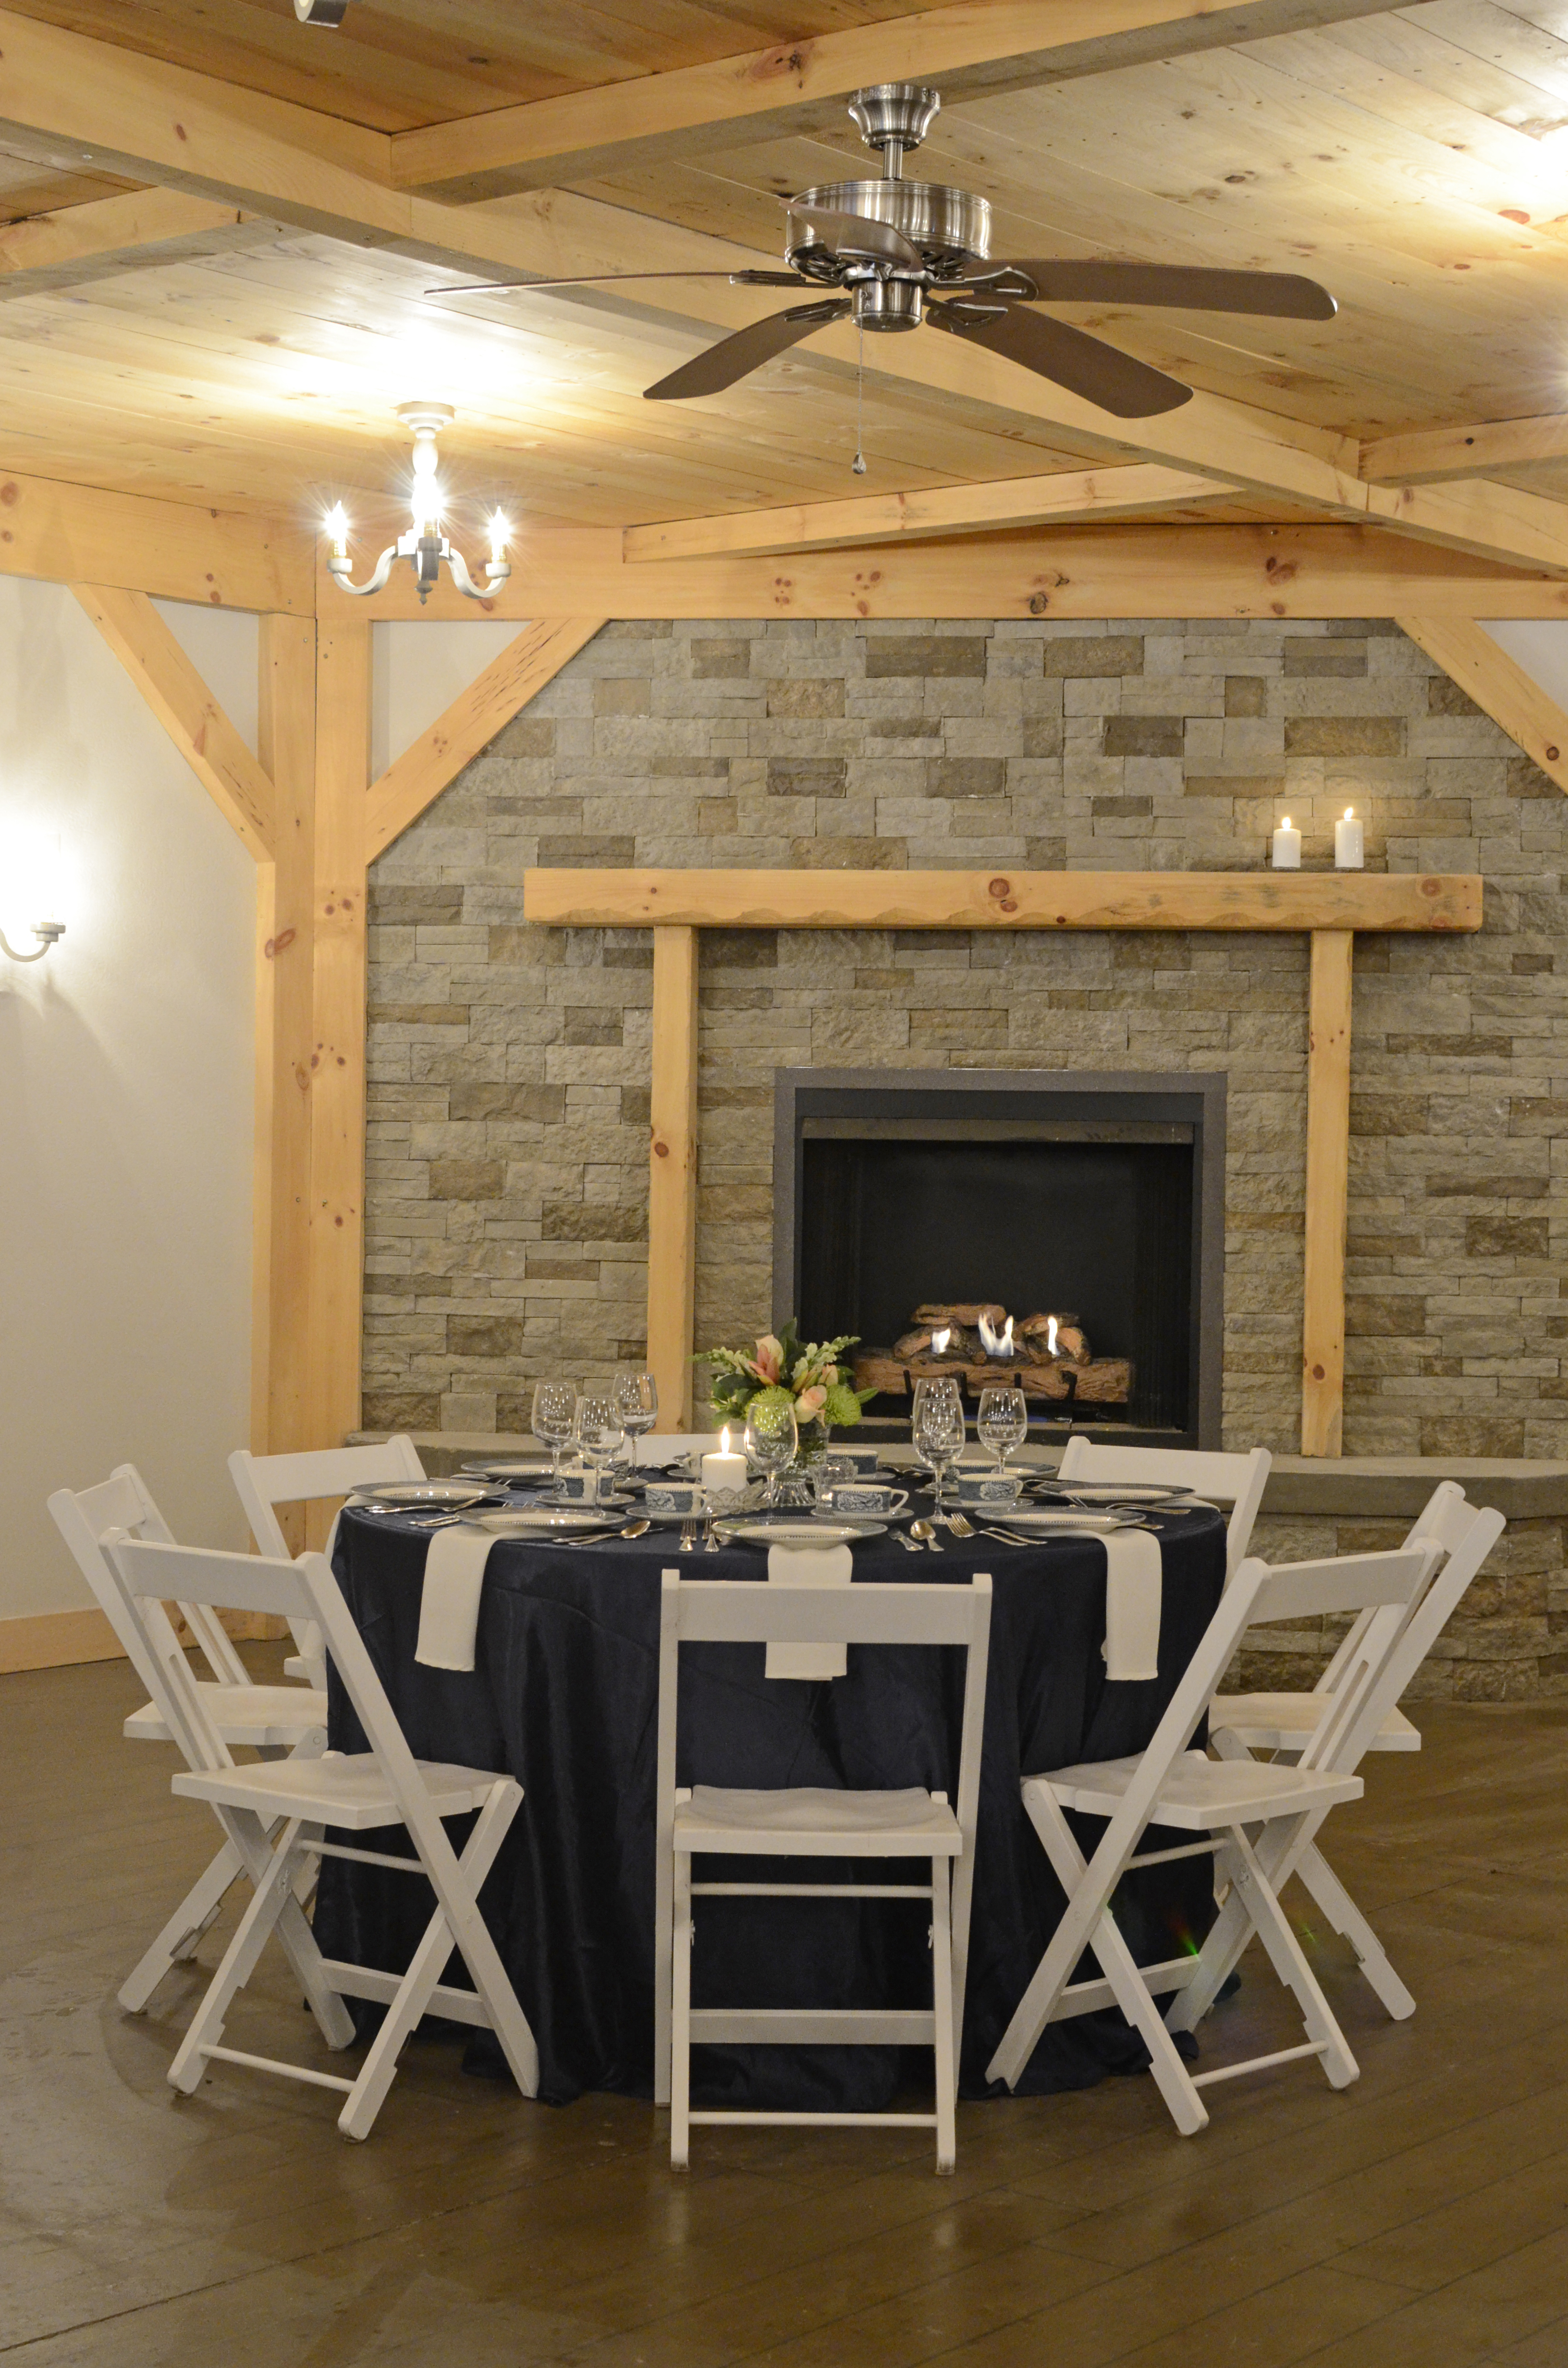 The Place At 534 West Farmington Oh Rustic Wedding Guide